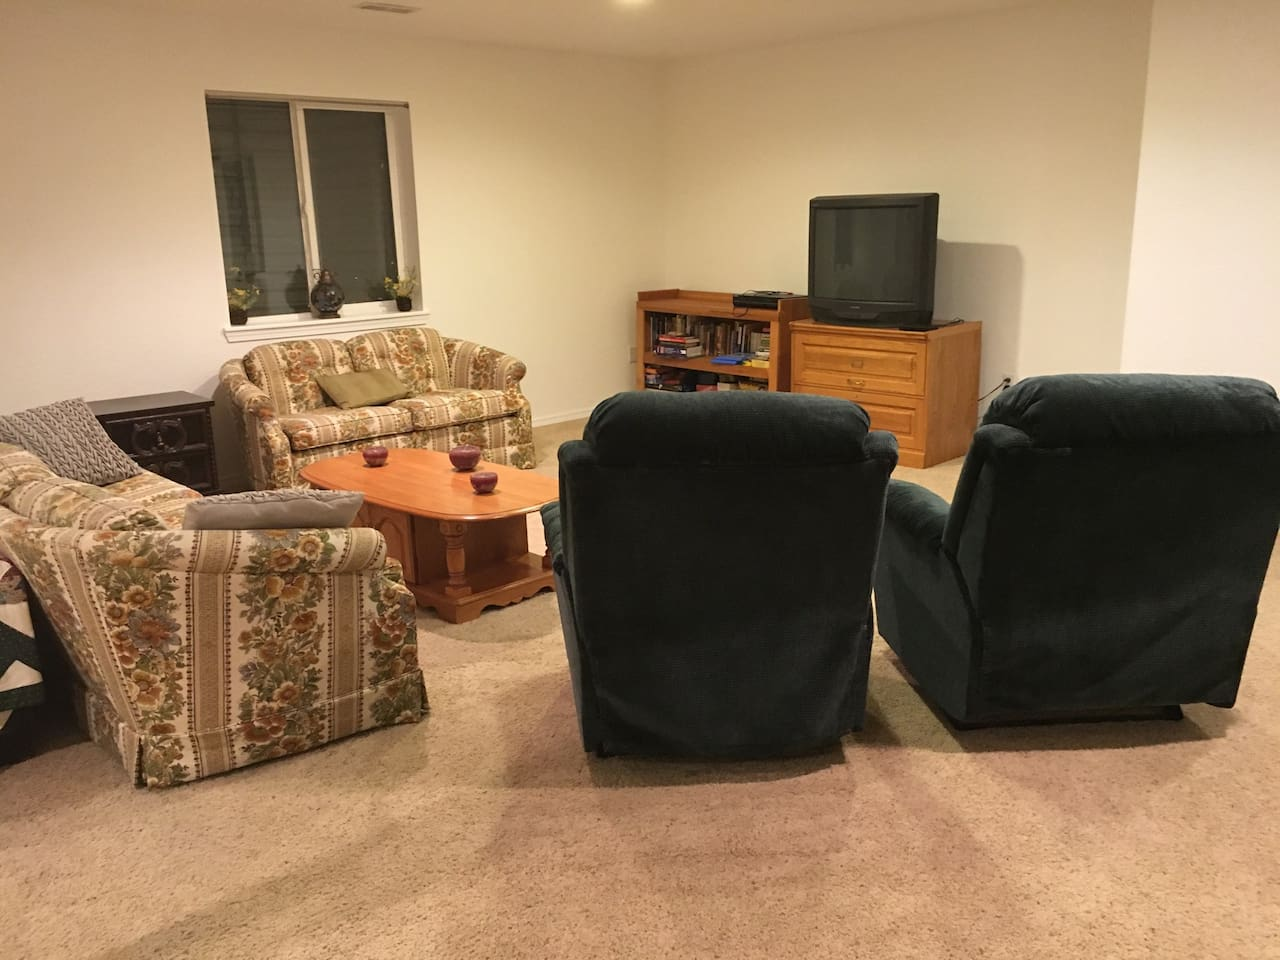 Living area has a couch, love seat, TV, games, books, and two recliners.